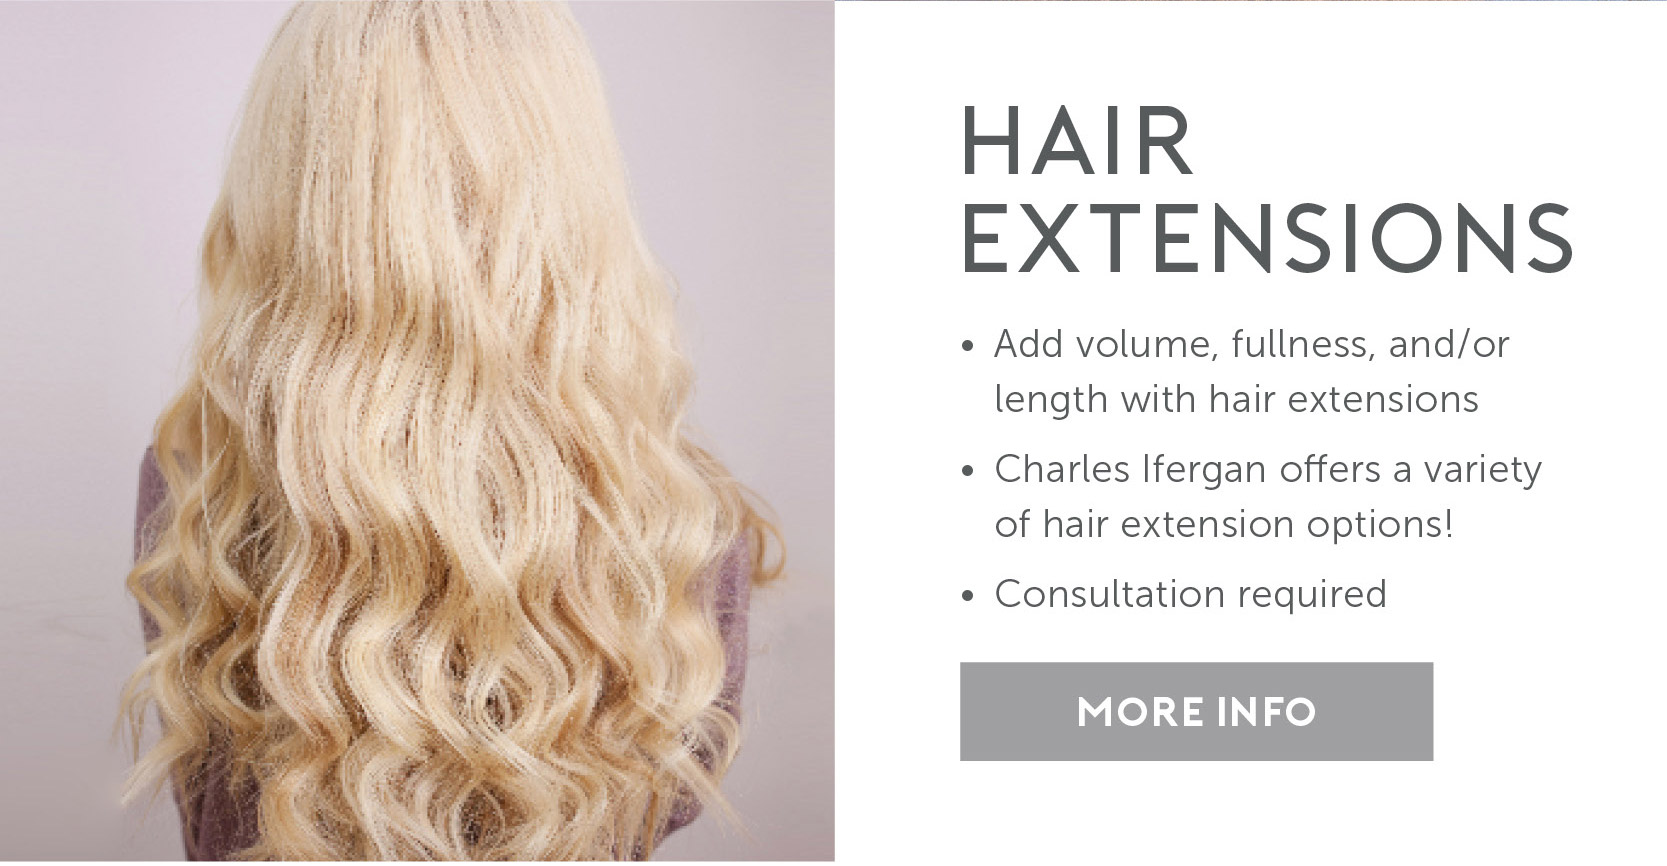 Hair Extensions – Add volume, fullness & length | Variety of extension options available | Consultation required